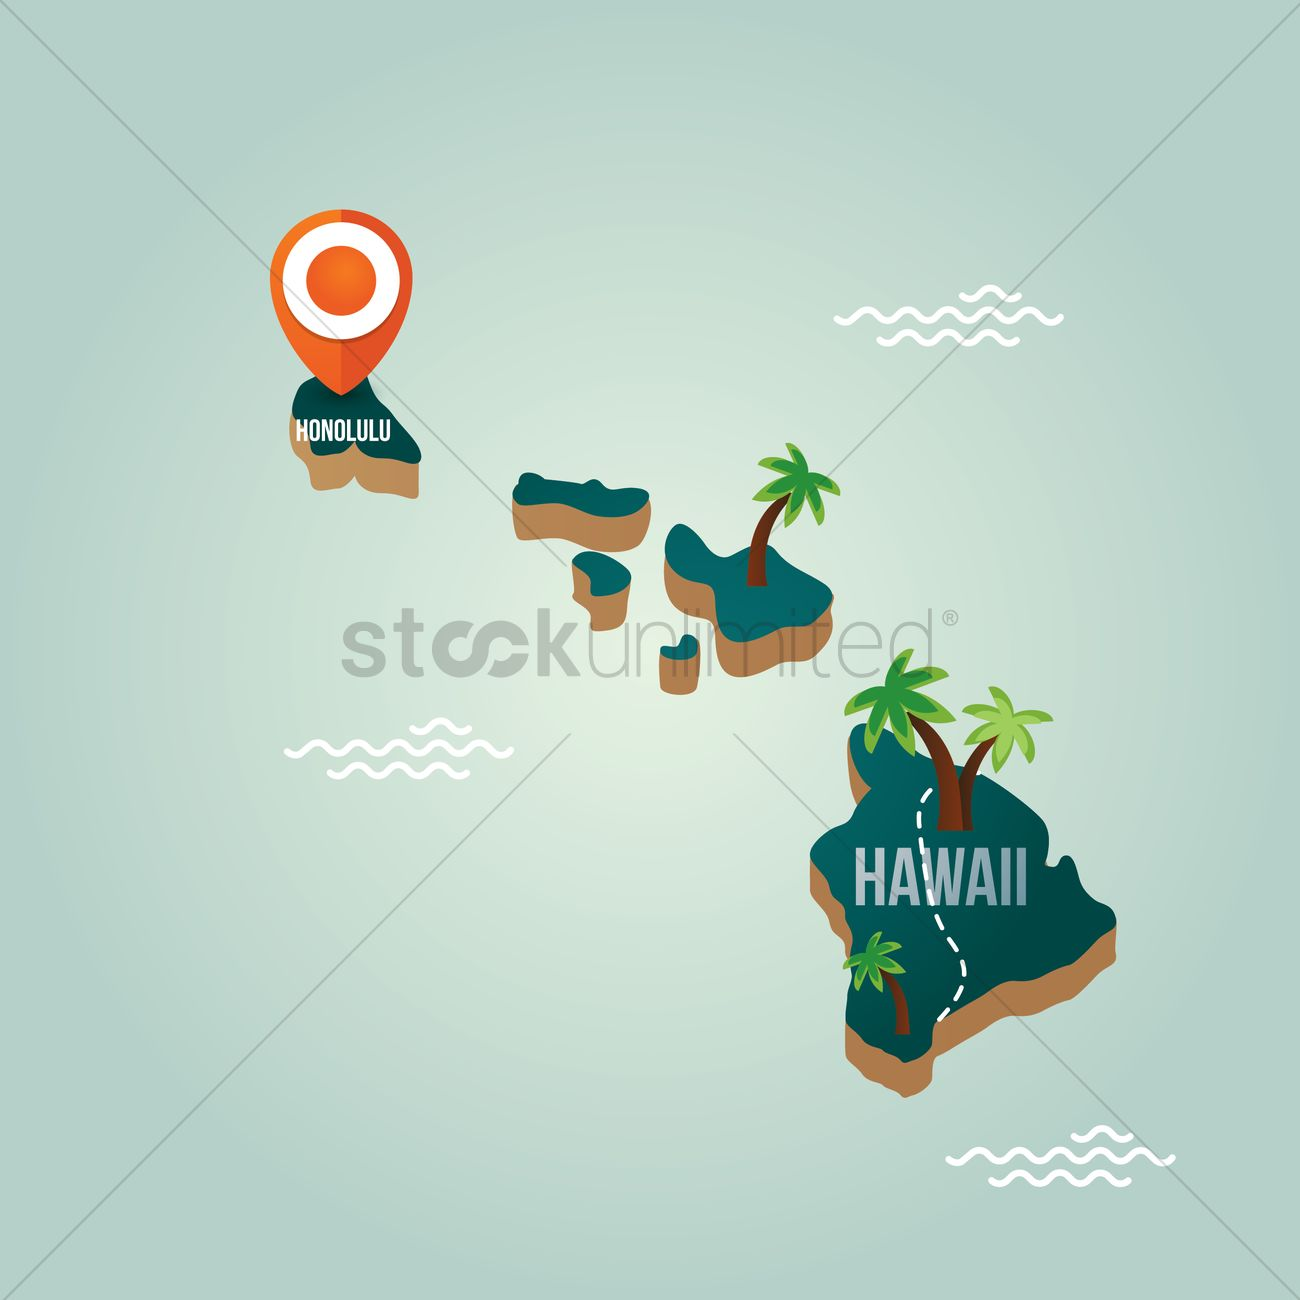 Hawaii Map With Capital City Vector Image StockUnlimited - Hawaii cities map